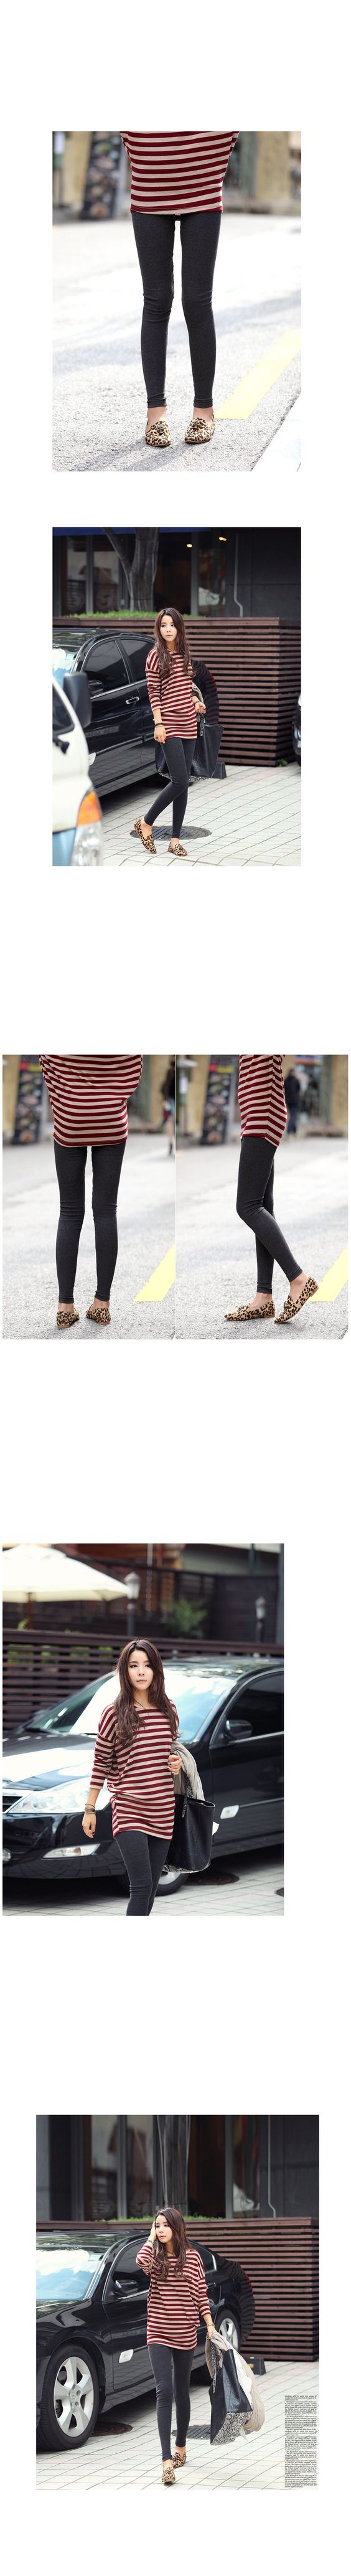 YESSTYLE: REDOPIN- Elastic-Waist Leggings - Free International Shipping on orders over $150